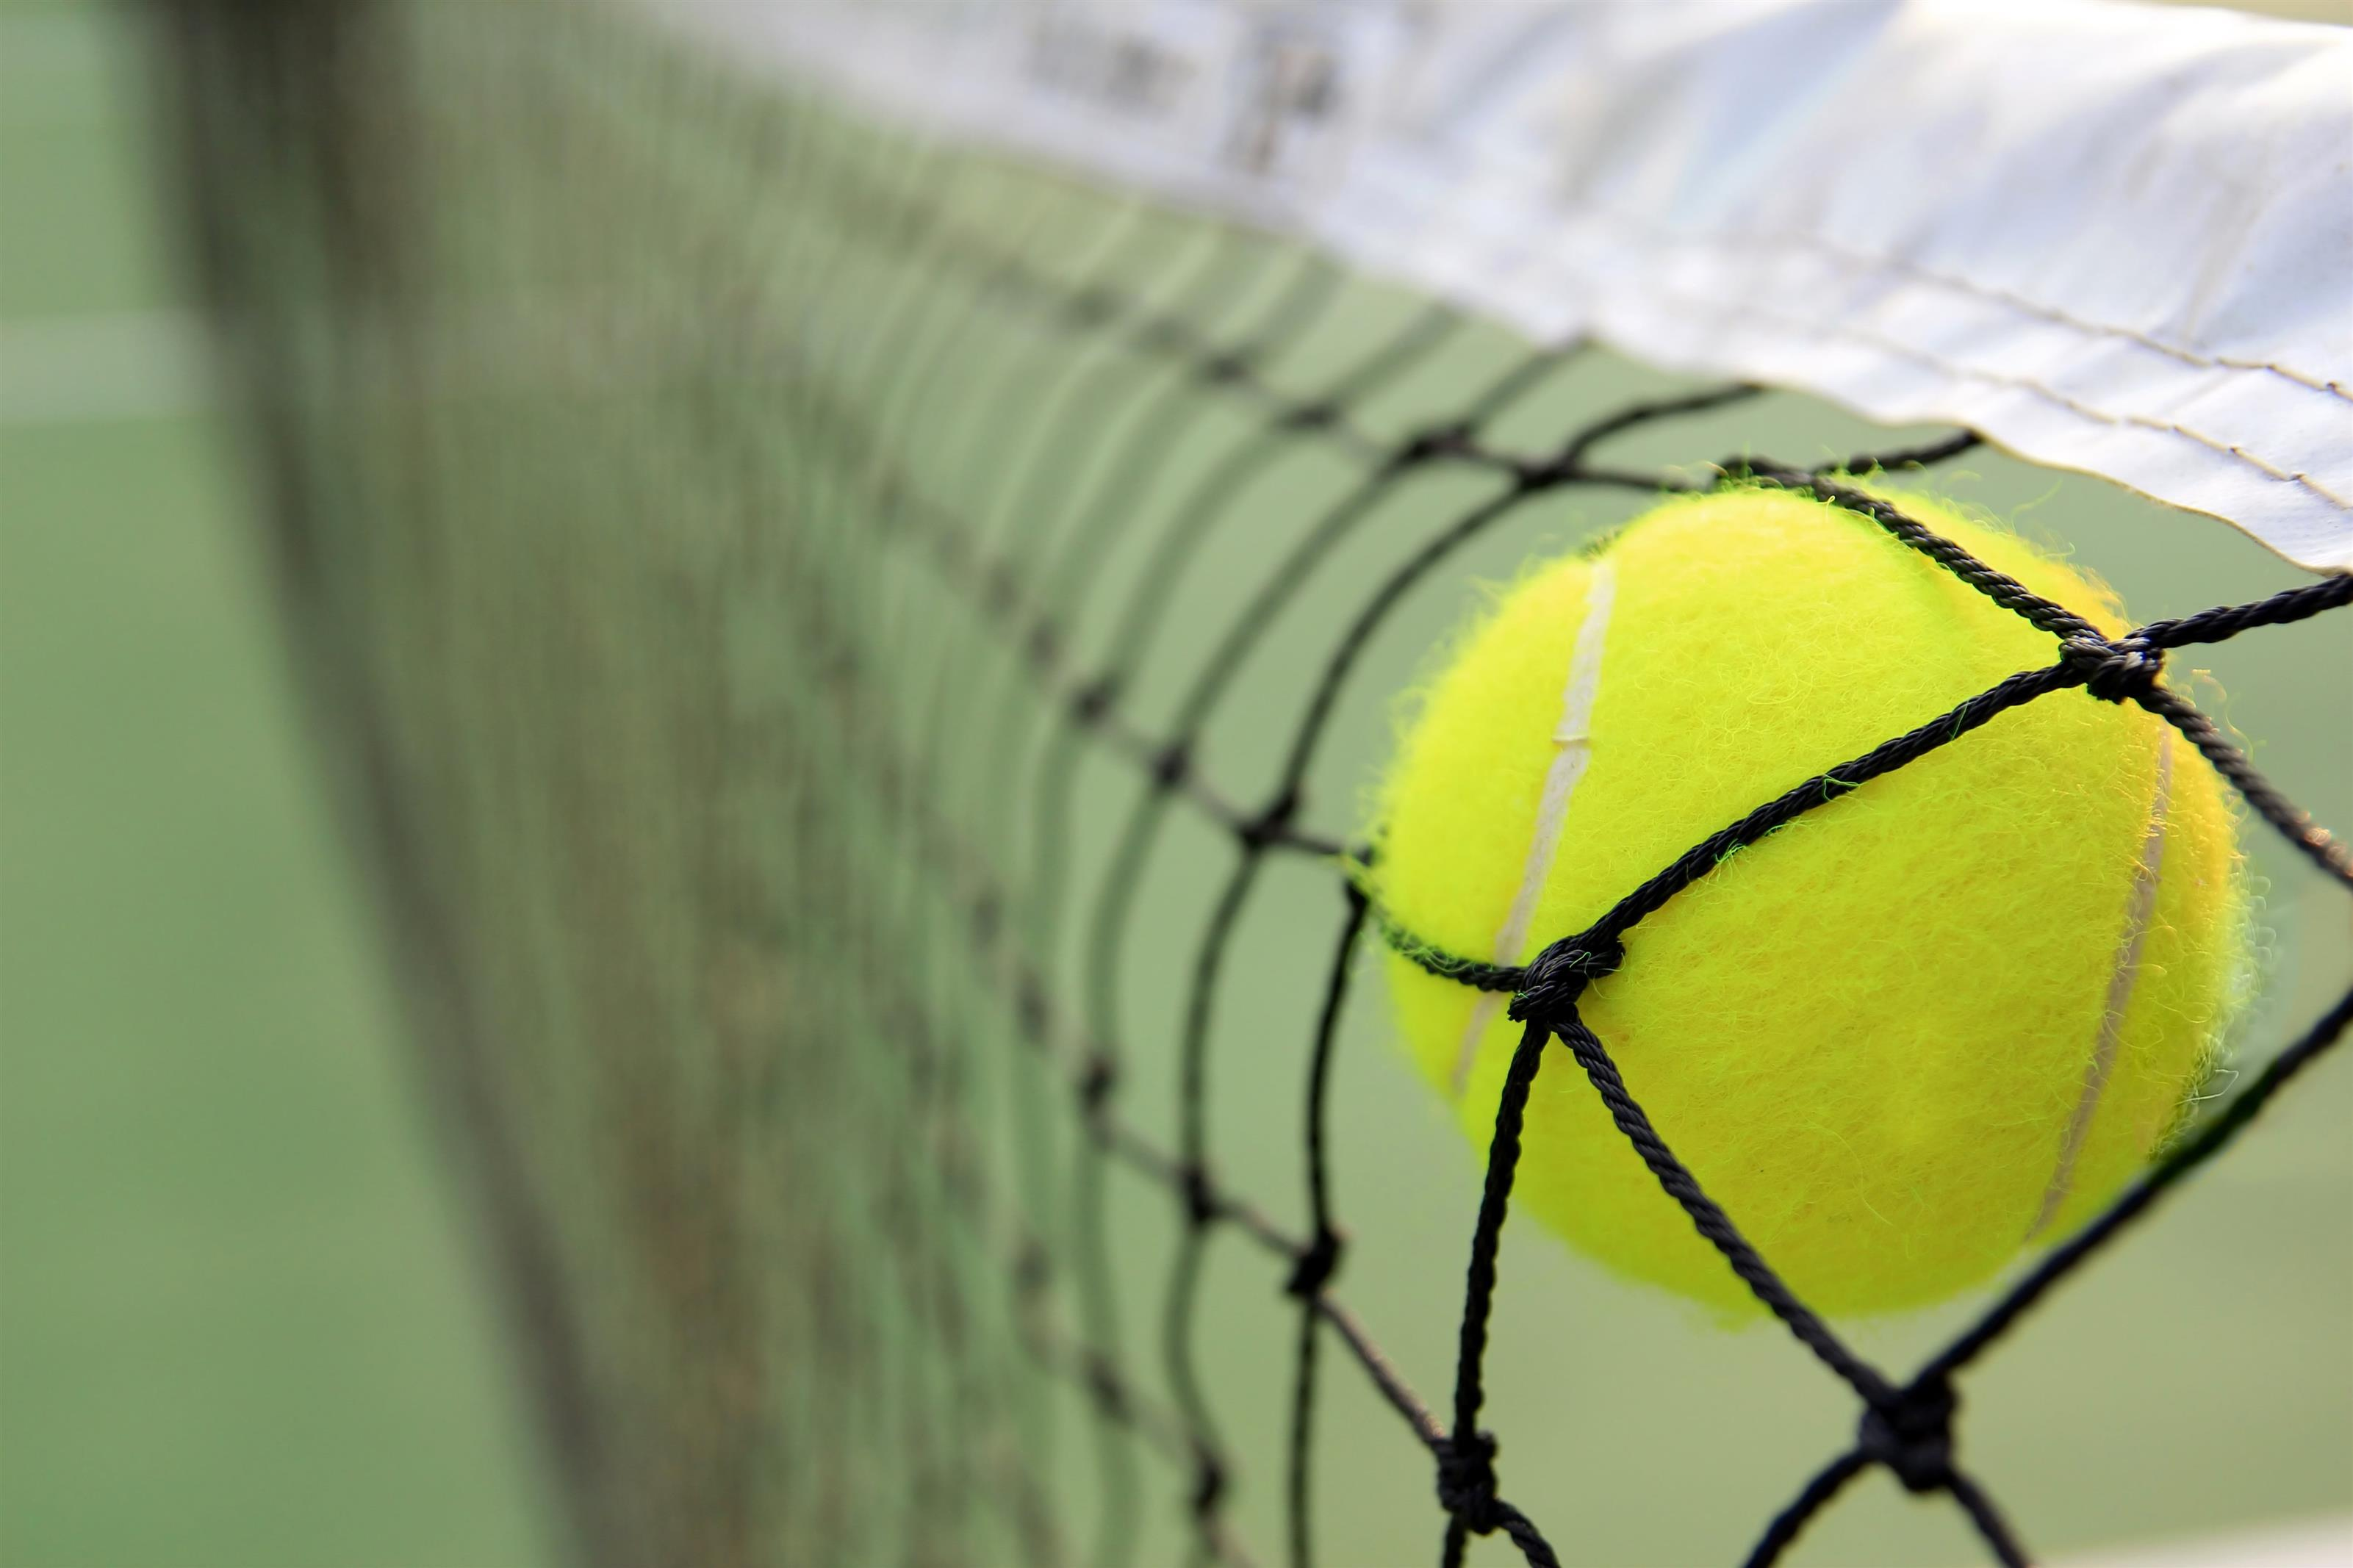 Tennis ball being caught in netting on a tennis court